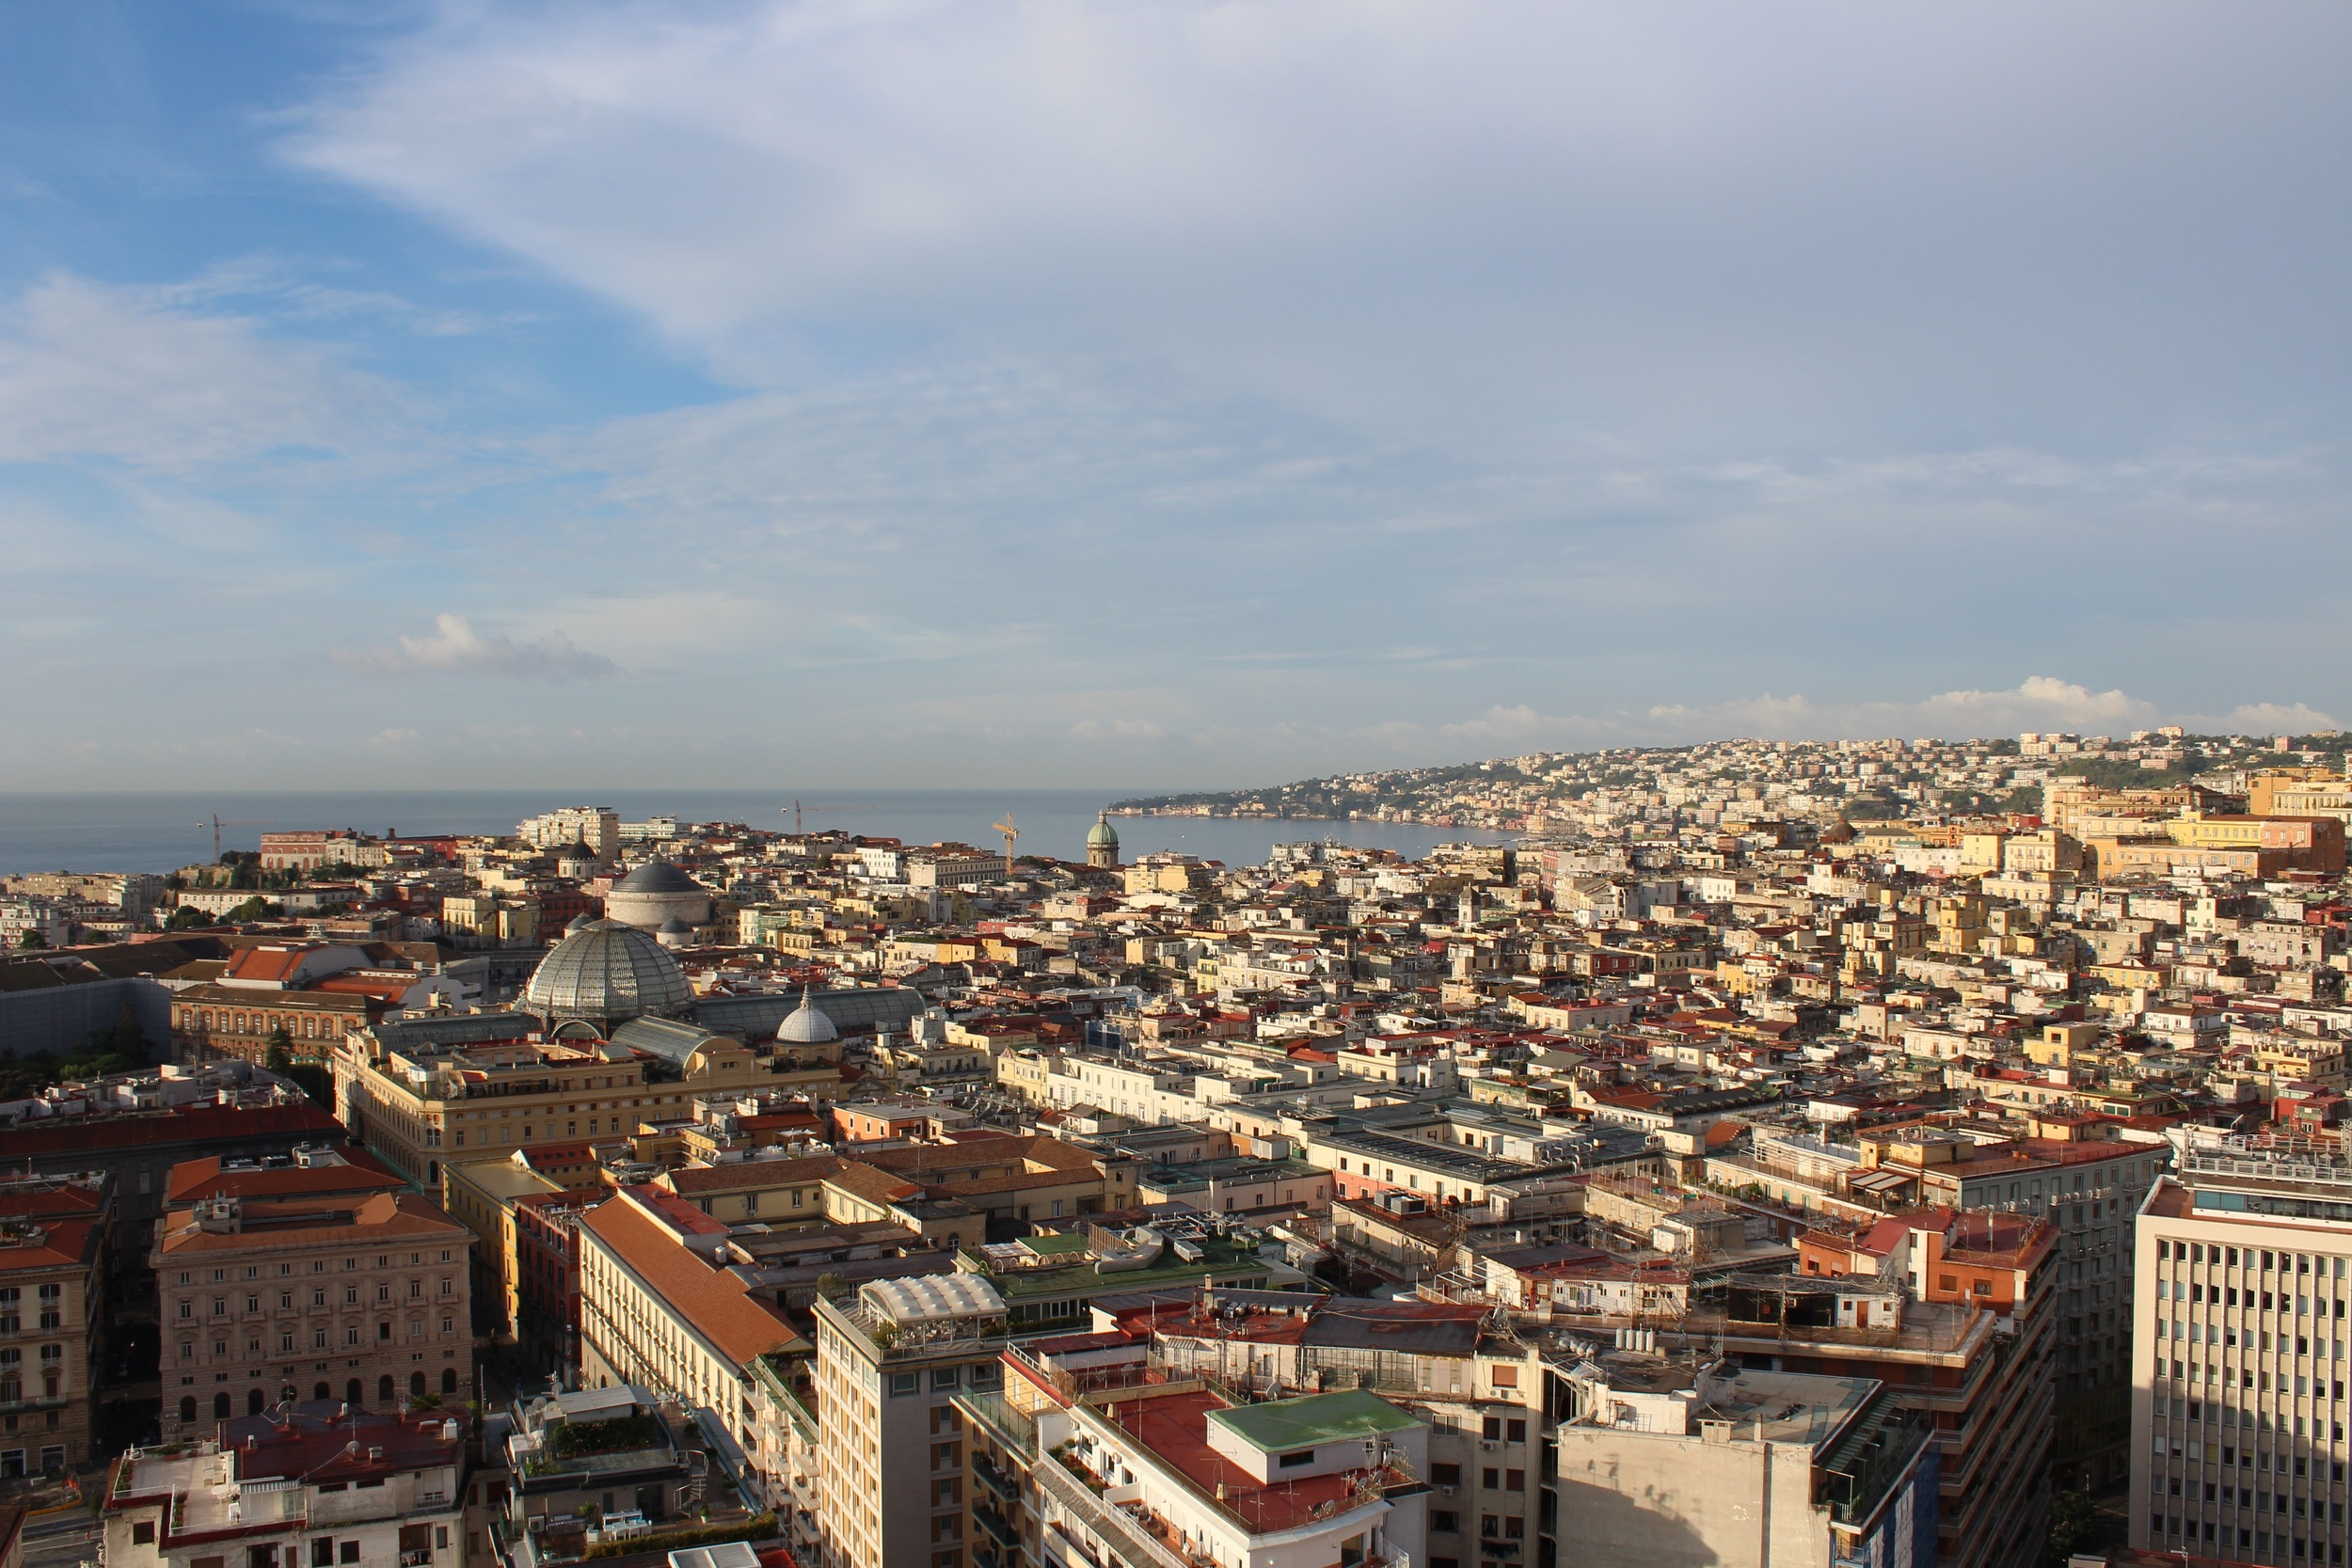 A view over the Bay of Naples.